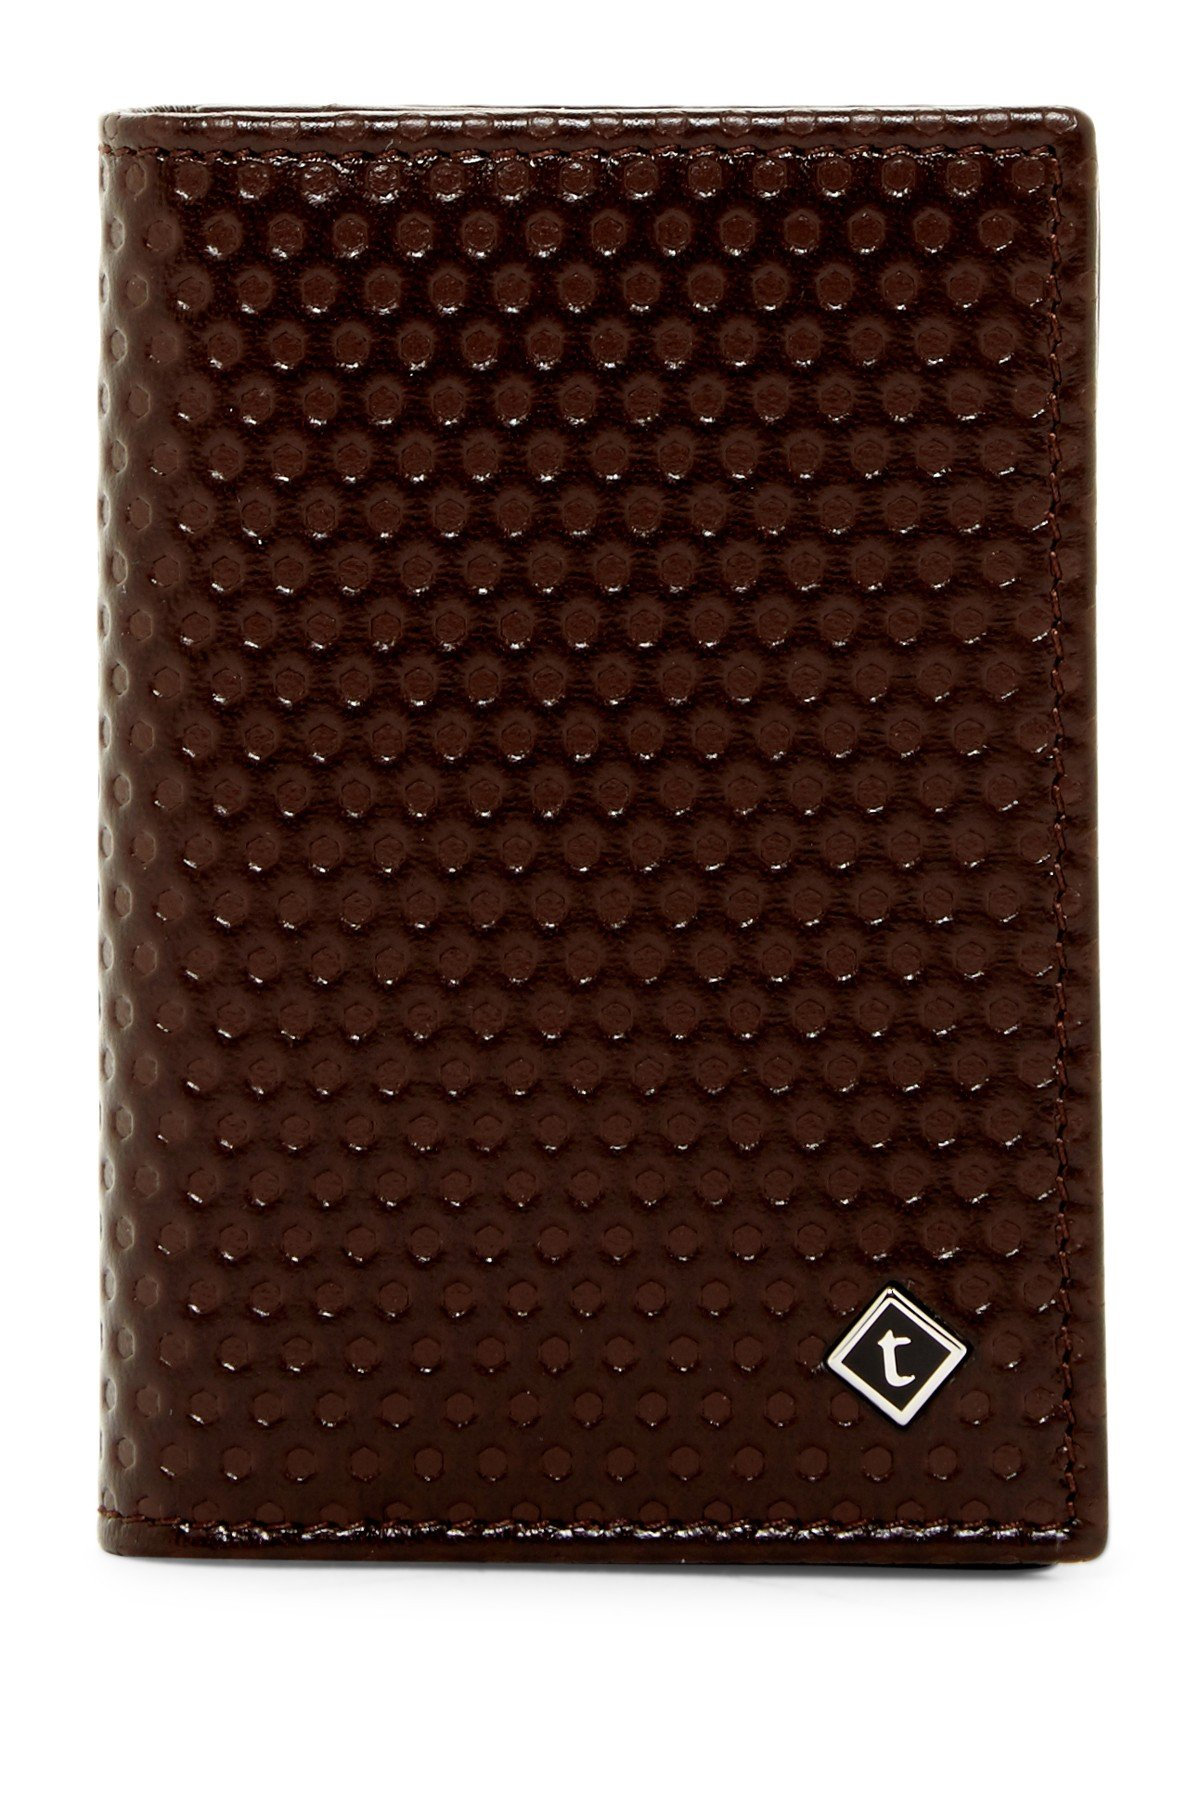 a.testoni Men's Nido Ape Calf Leather Business Card Case Wallet, OS, Moro Dark Brown